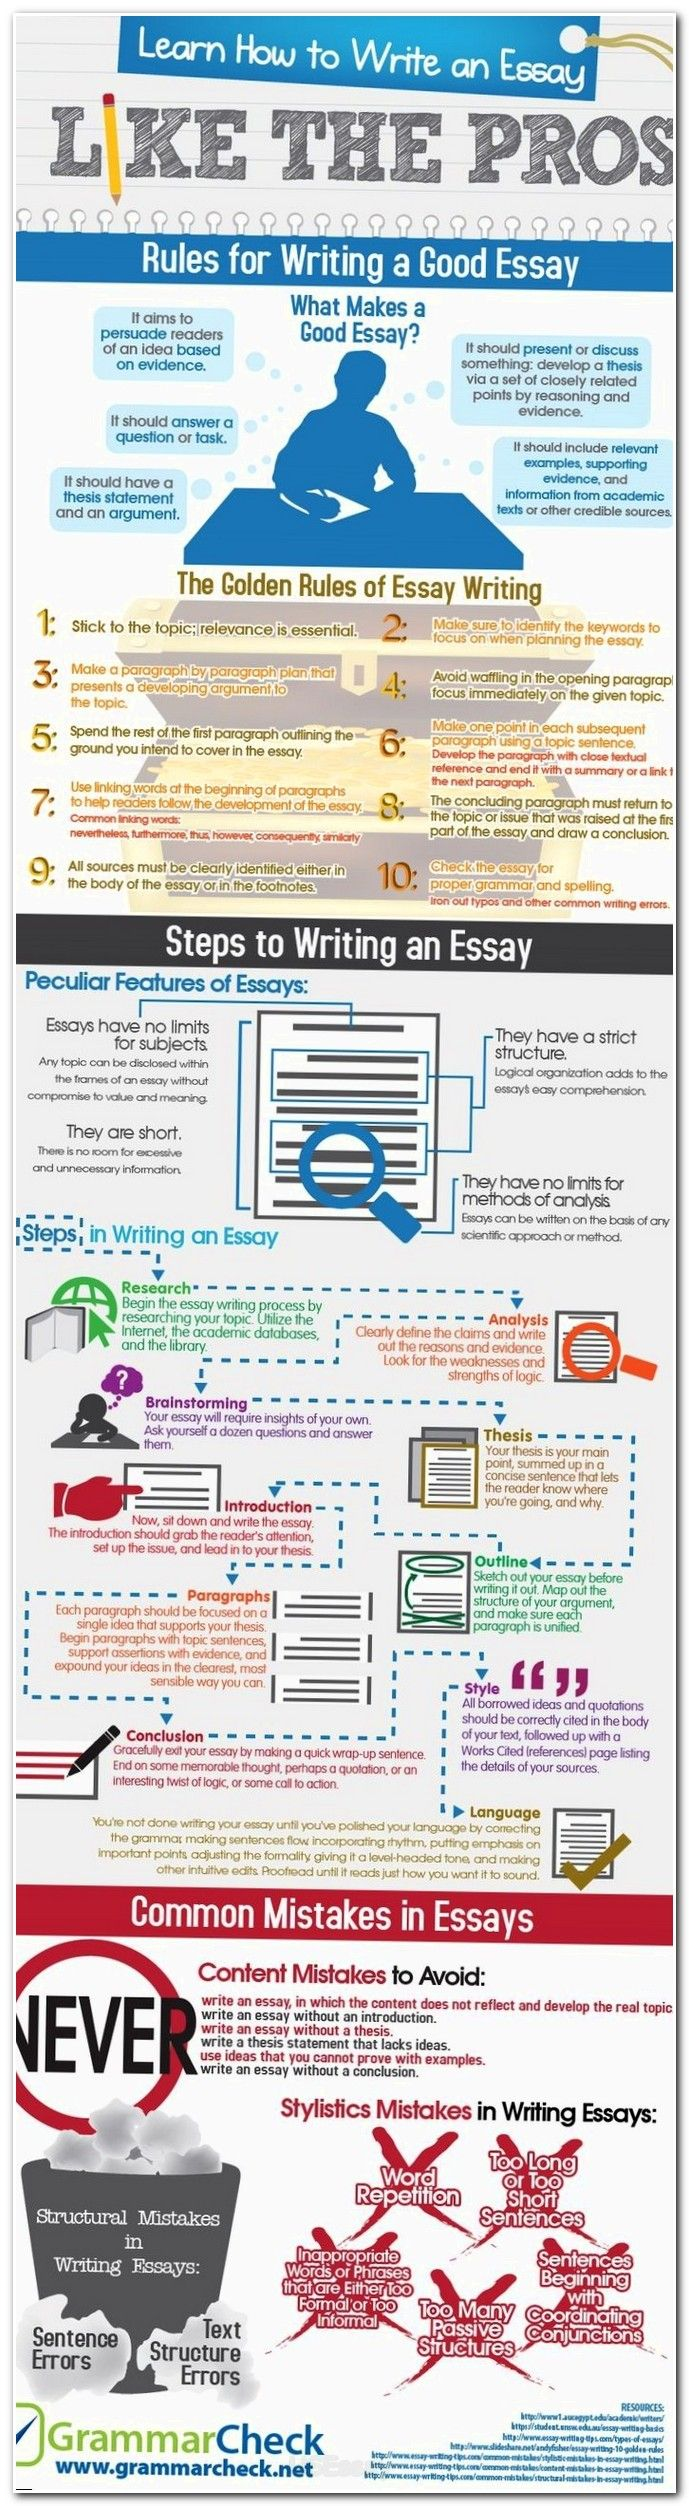 the best essay competition ideas essay   essay essaywriting songs to write essays about term paper topics for english